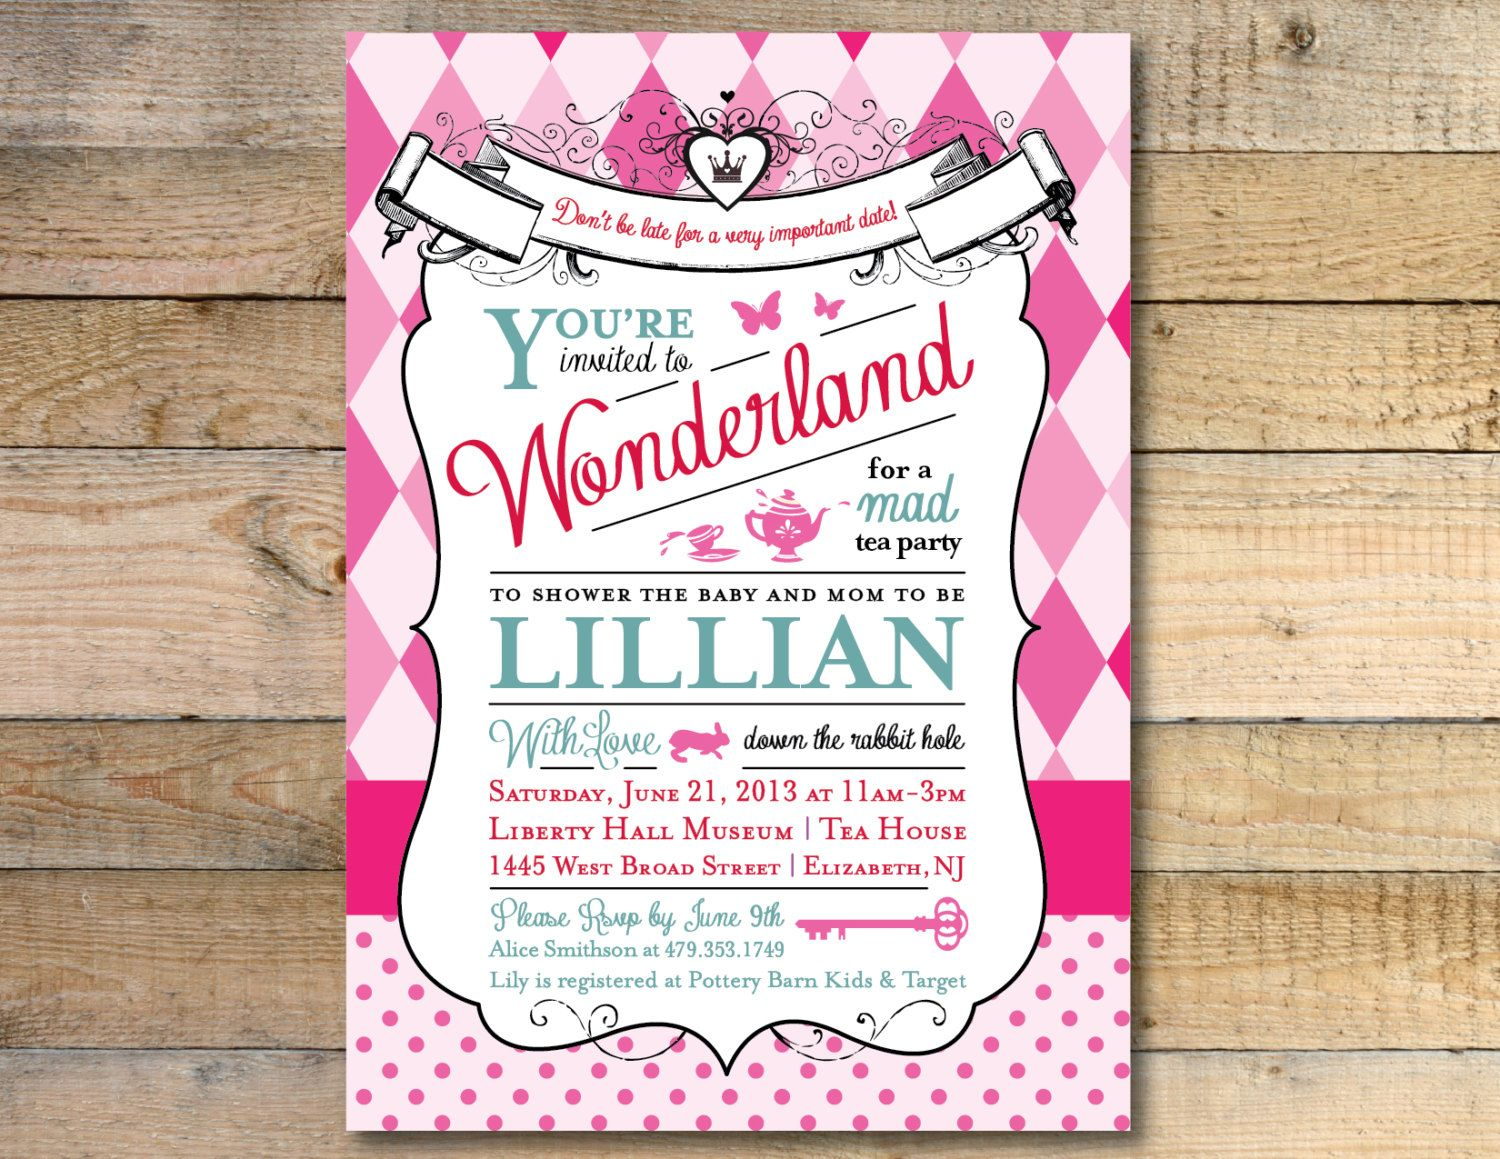 Alice in wonderland baby shower invitation free template party alice in wonderland baby shower invitation free template party maxwellsz